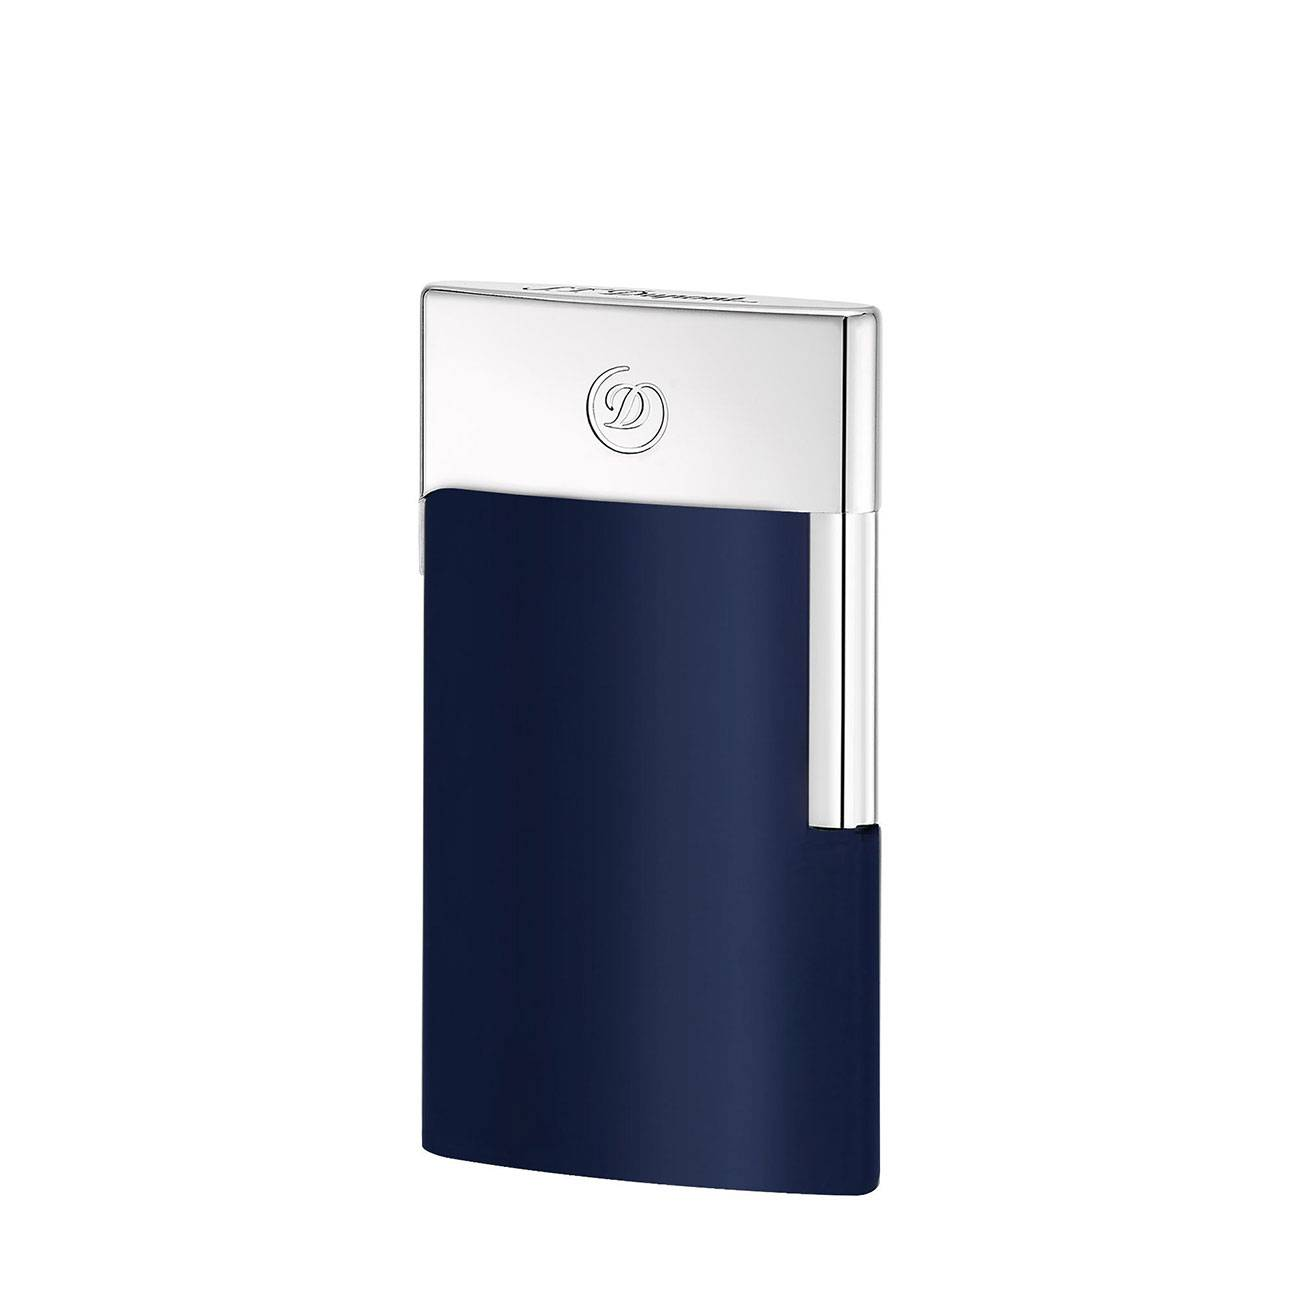 027008E LIGHTER E-SLIM imagine produs